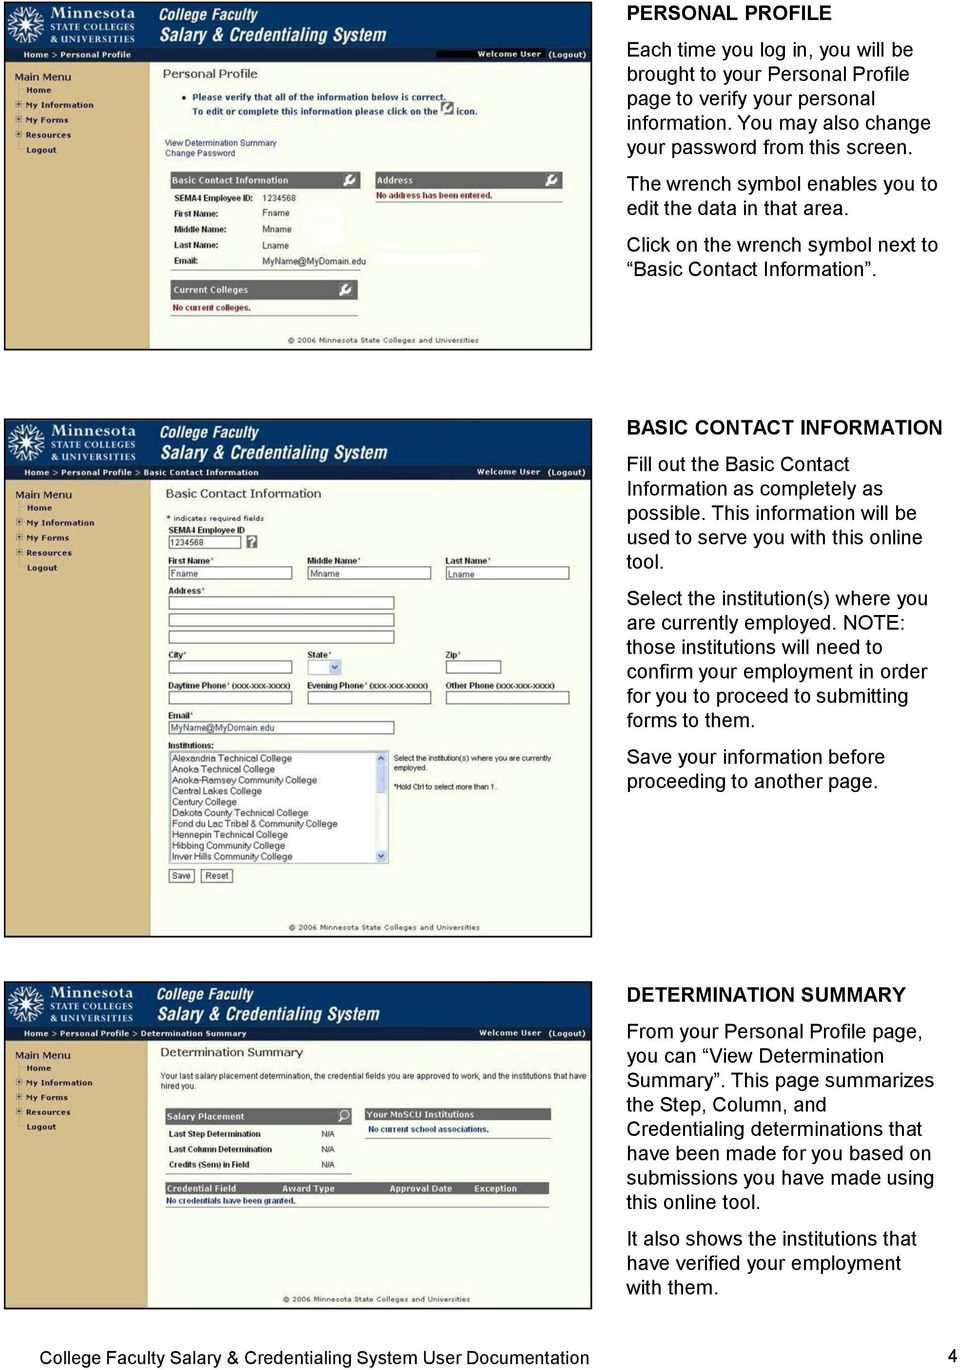 BASIC CONTACT INFORMATION Fill out the Basic Contact Information as completely as possible. This information will be used to serve you with this online tool.